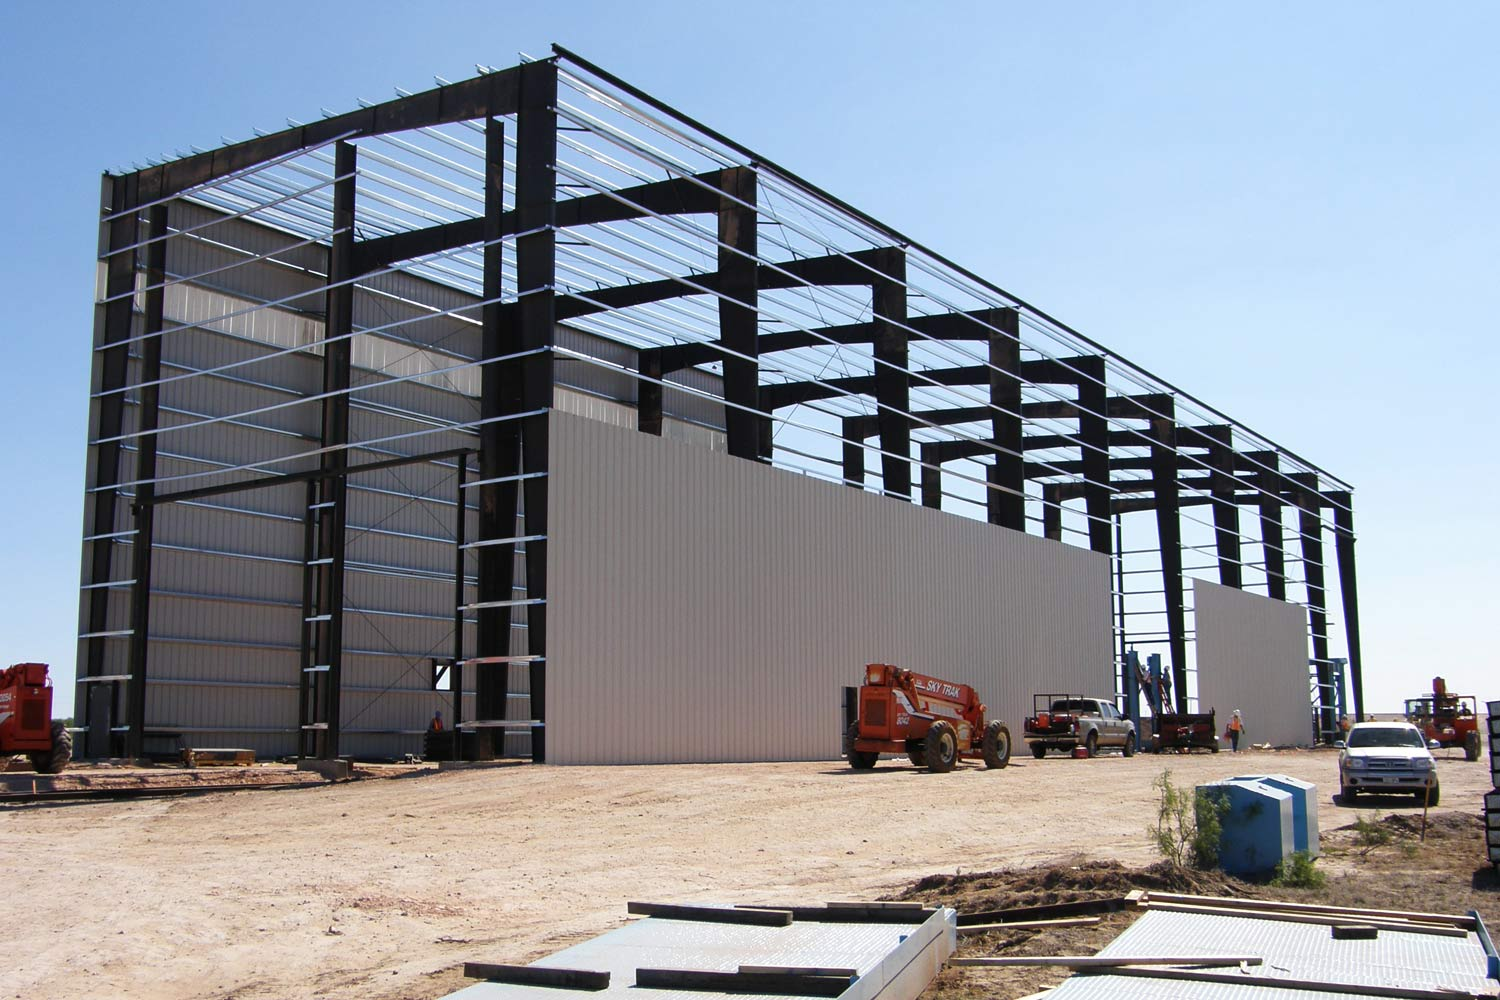 THE VERSATILITY OF THE STEEL BUILDING